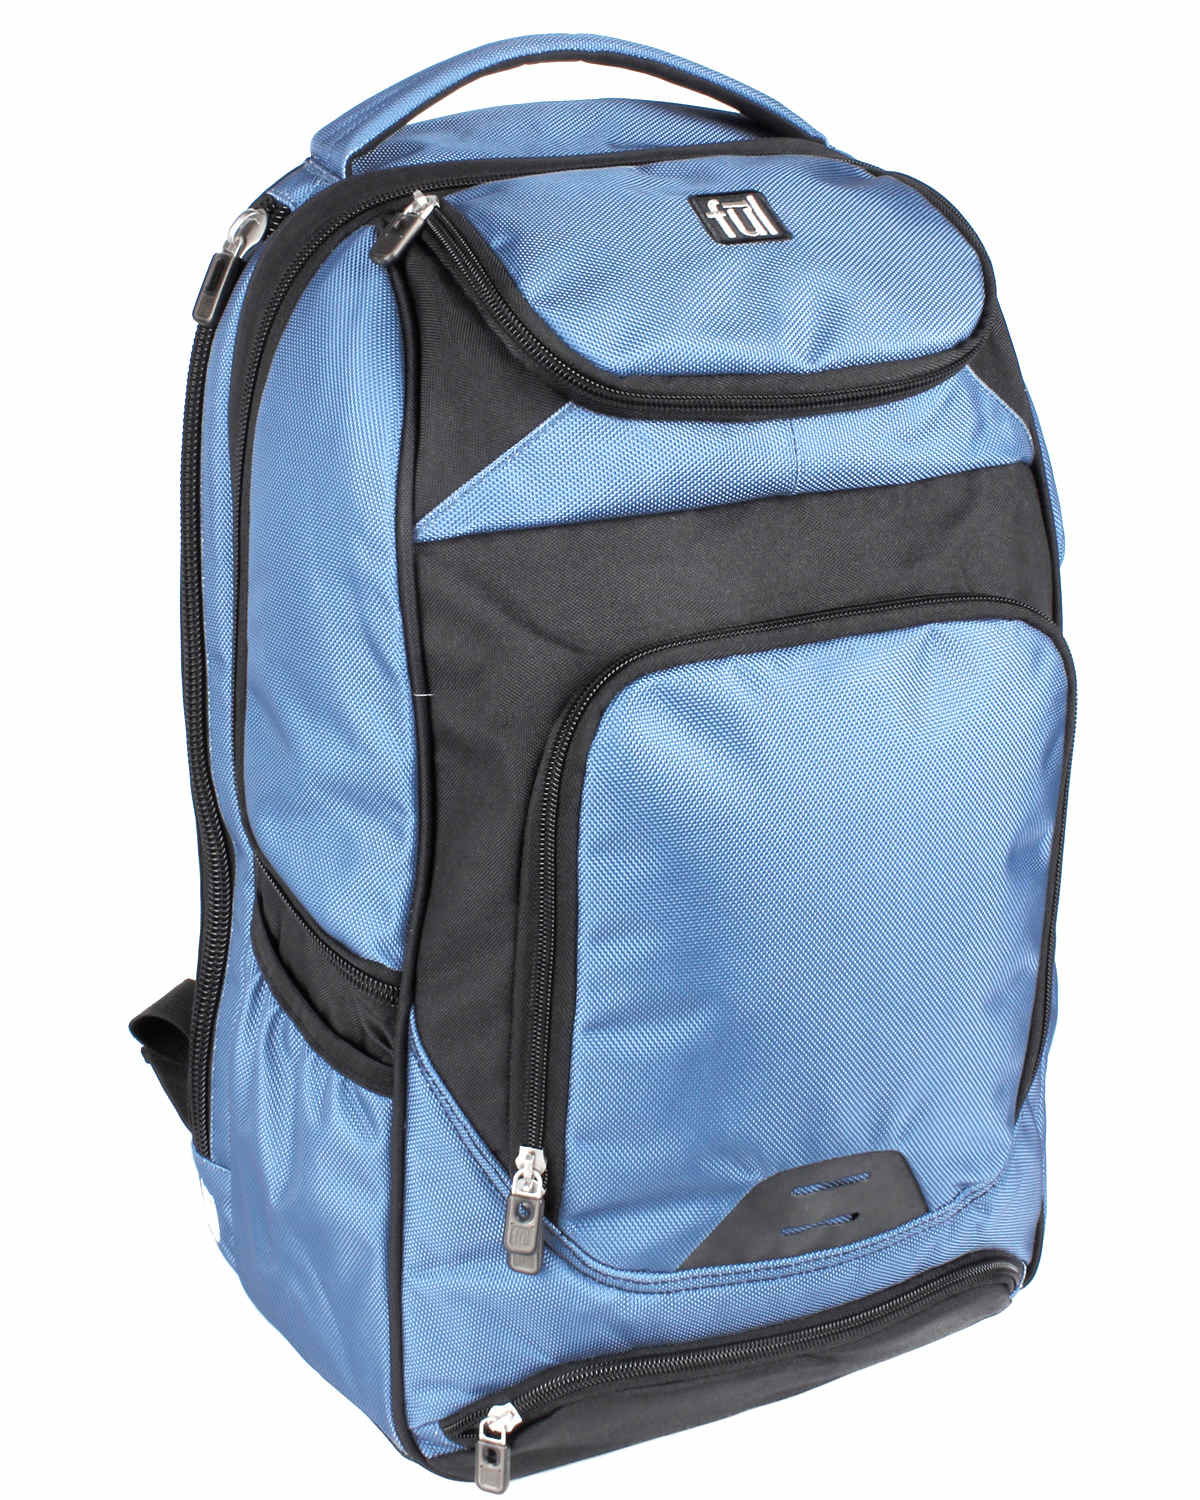 CoreTech Live Wire Backpack